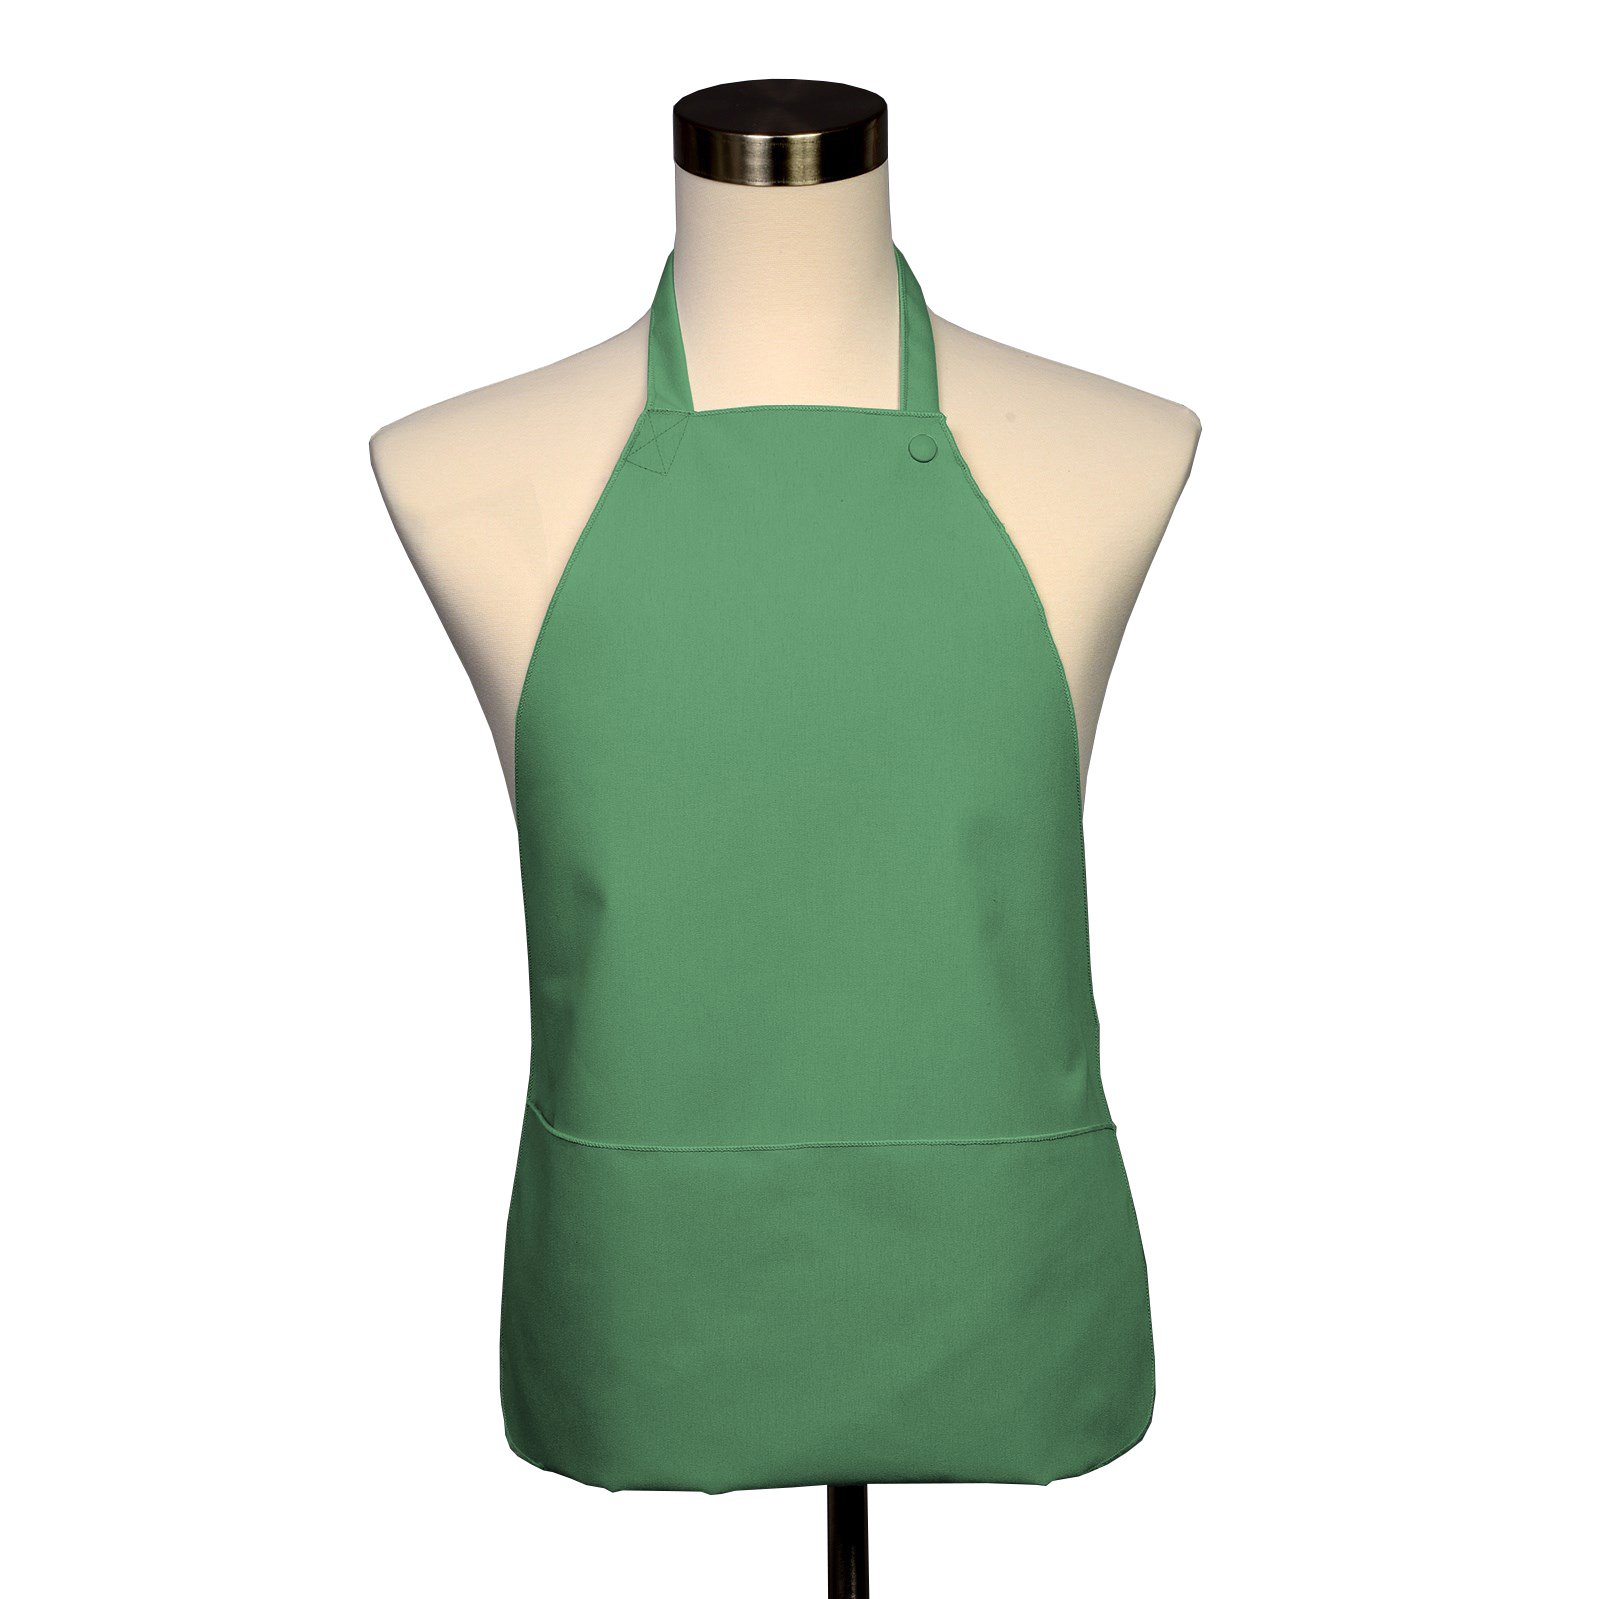 Adult Bib 25 Pack - Covered with Care Assorted Colors Available! (Seafoam) by Fabric Textile Products